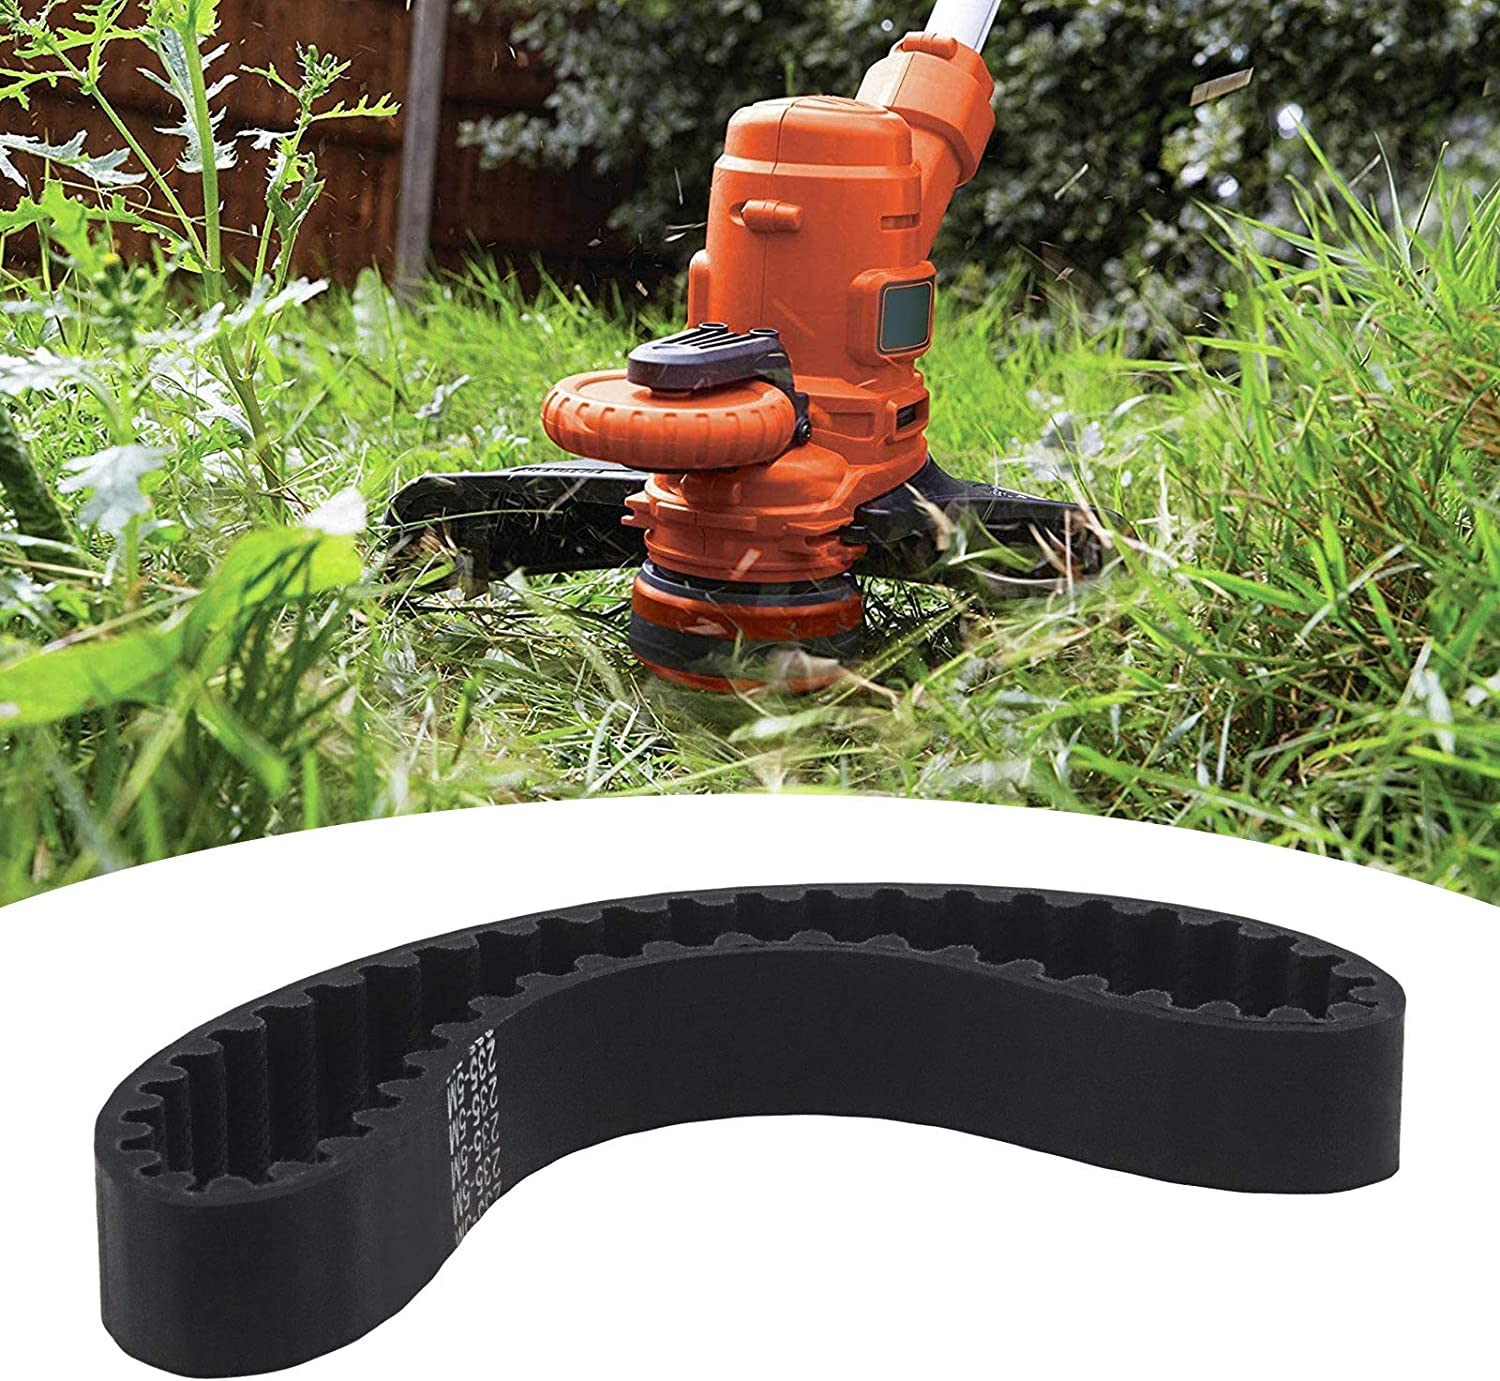 Mower Drive Belt 12mm Width 5mm Pitch Rubber Synchronous Closed Loop Timing Belts Compatible with Mac Allister MBS800 Lawnmower